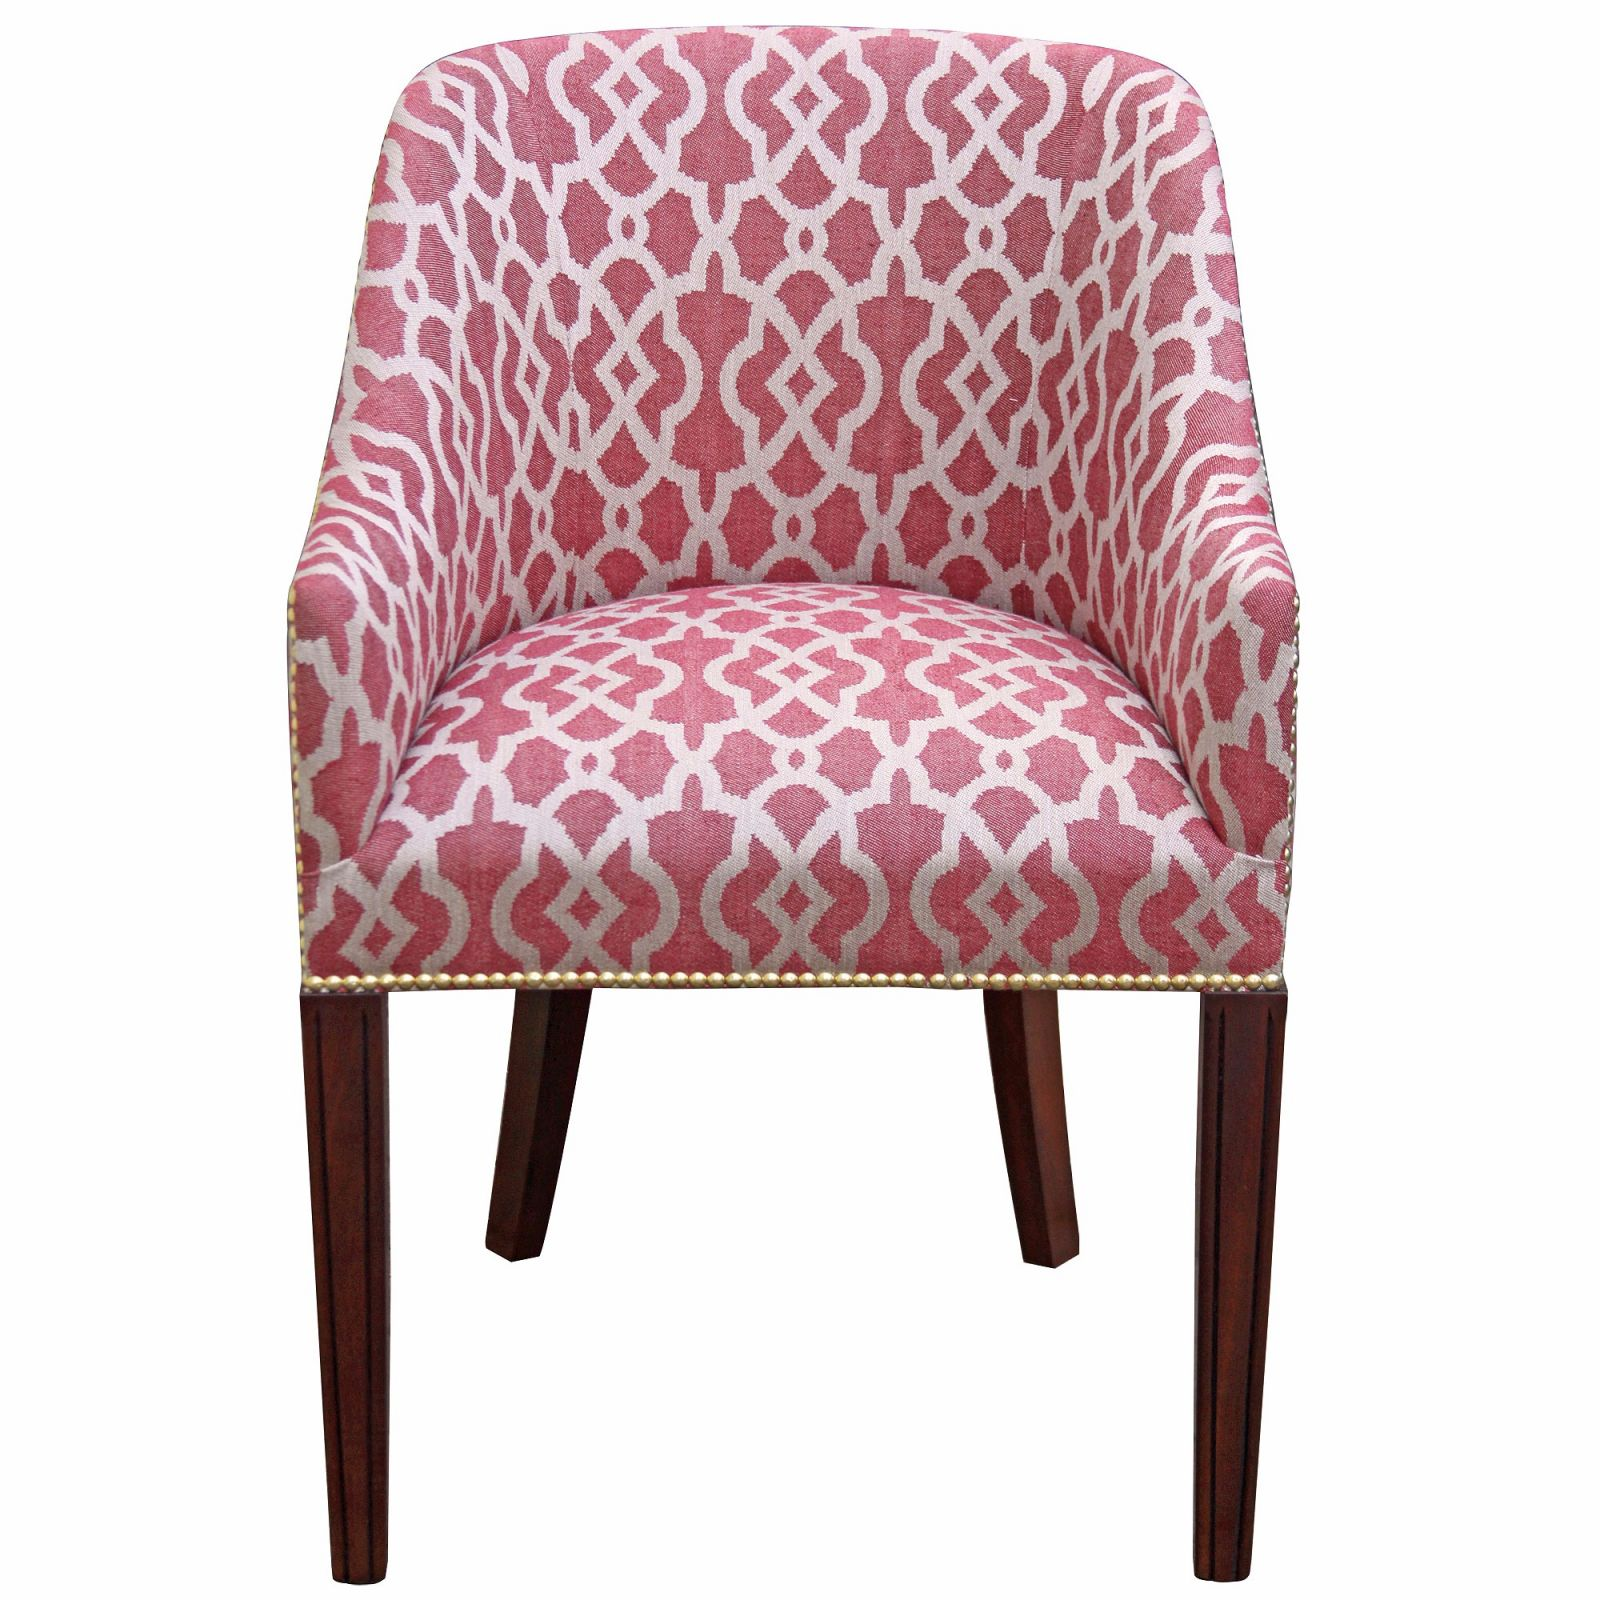 Hinton tub chair in a ruby weave